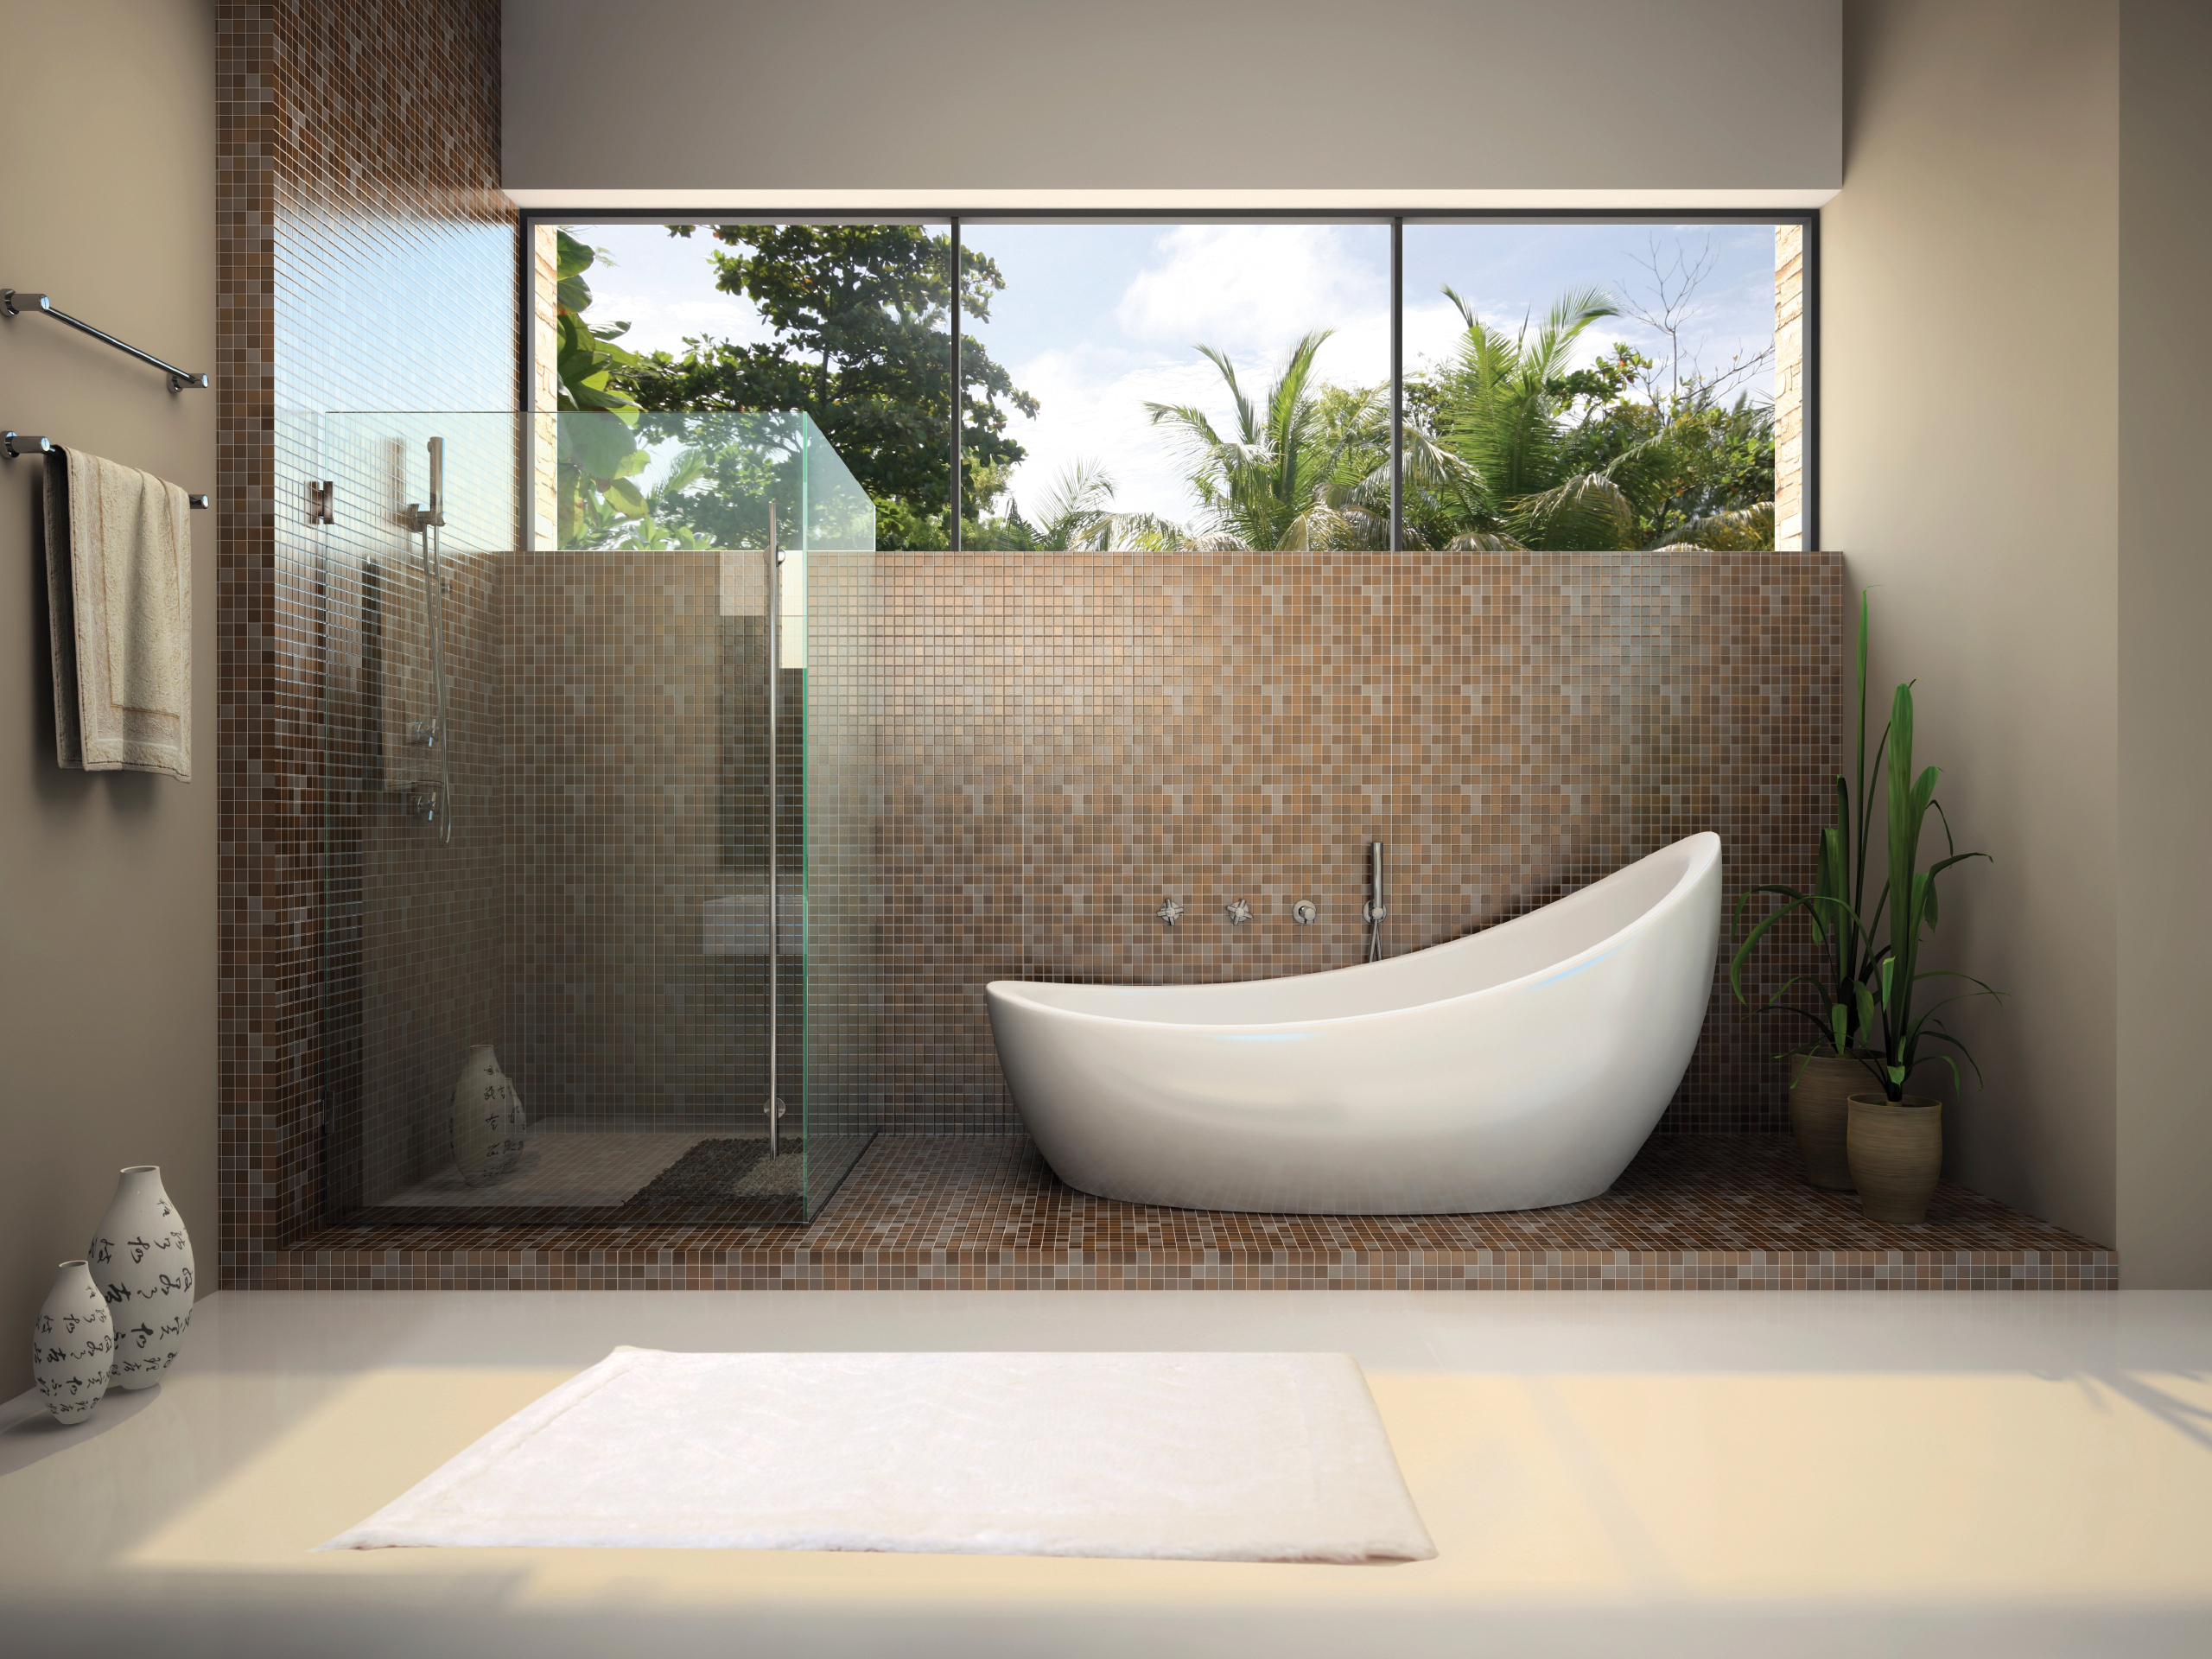 mathelp unsealed it l your or slipping left shower wood in around this bathroom teak can stunning be bamboo mat square bath prevent with easily